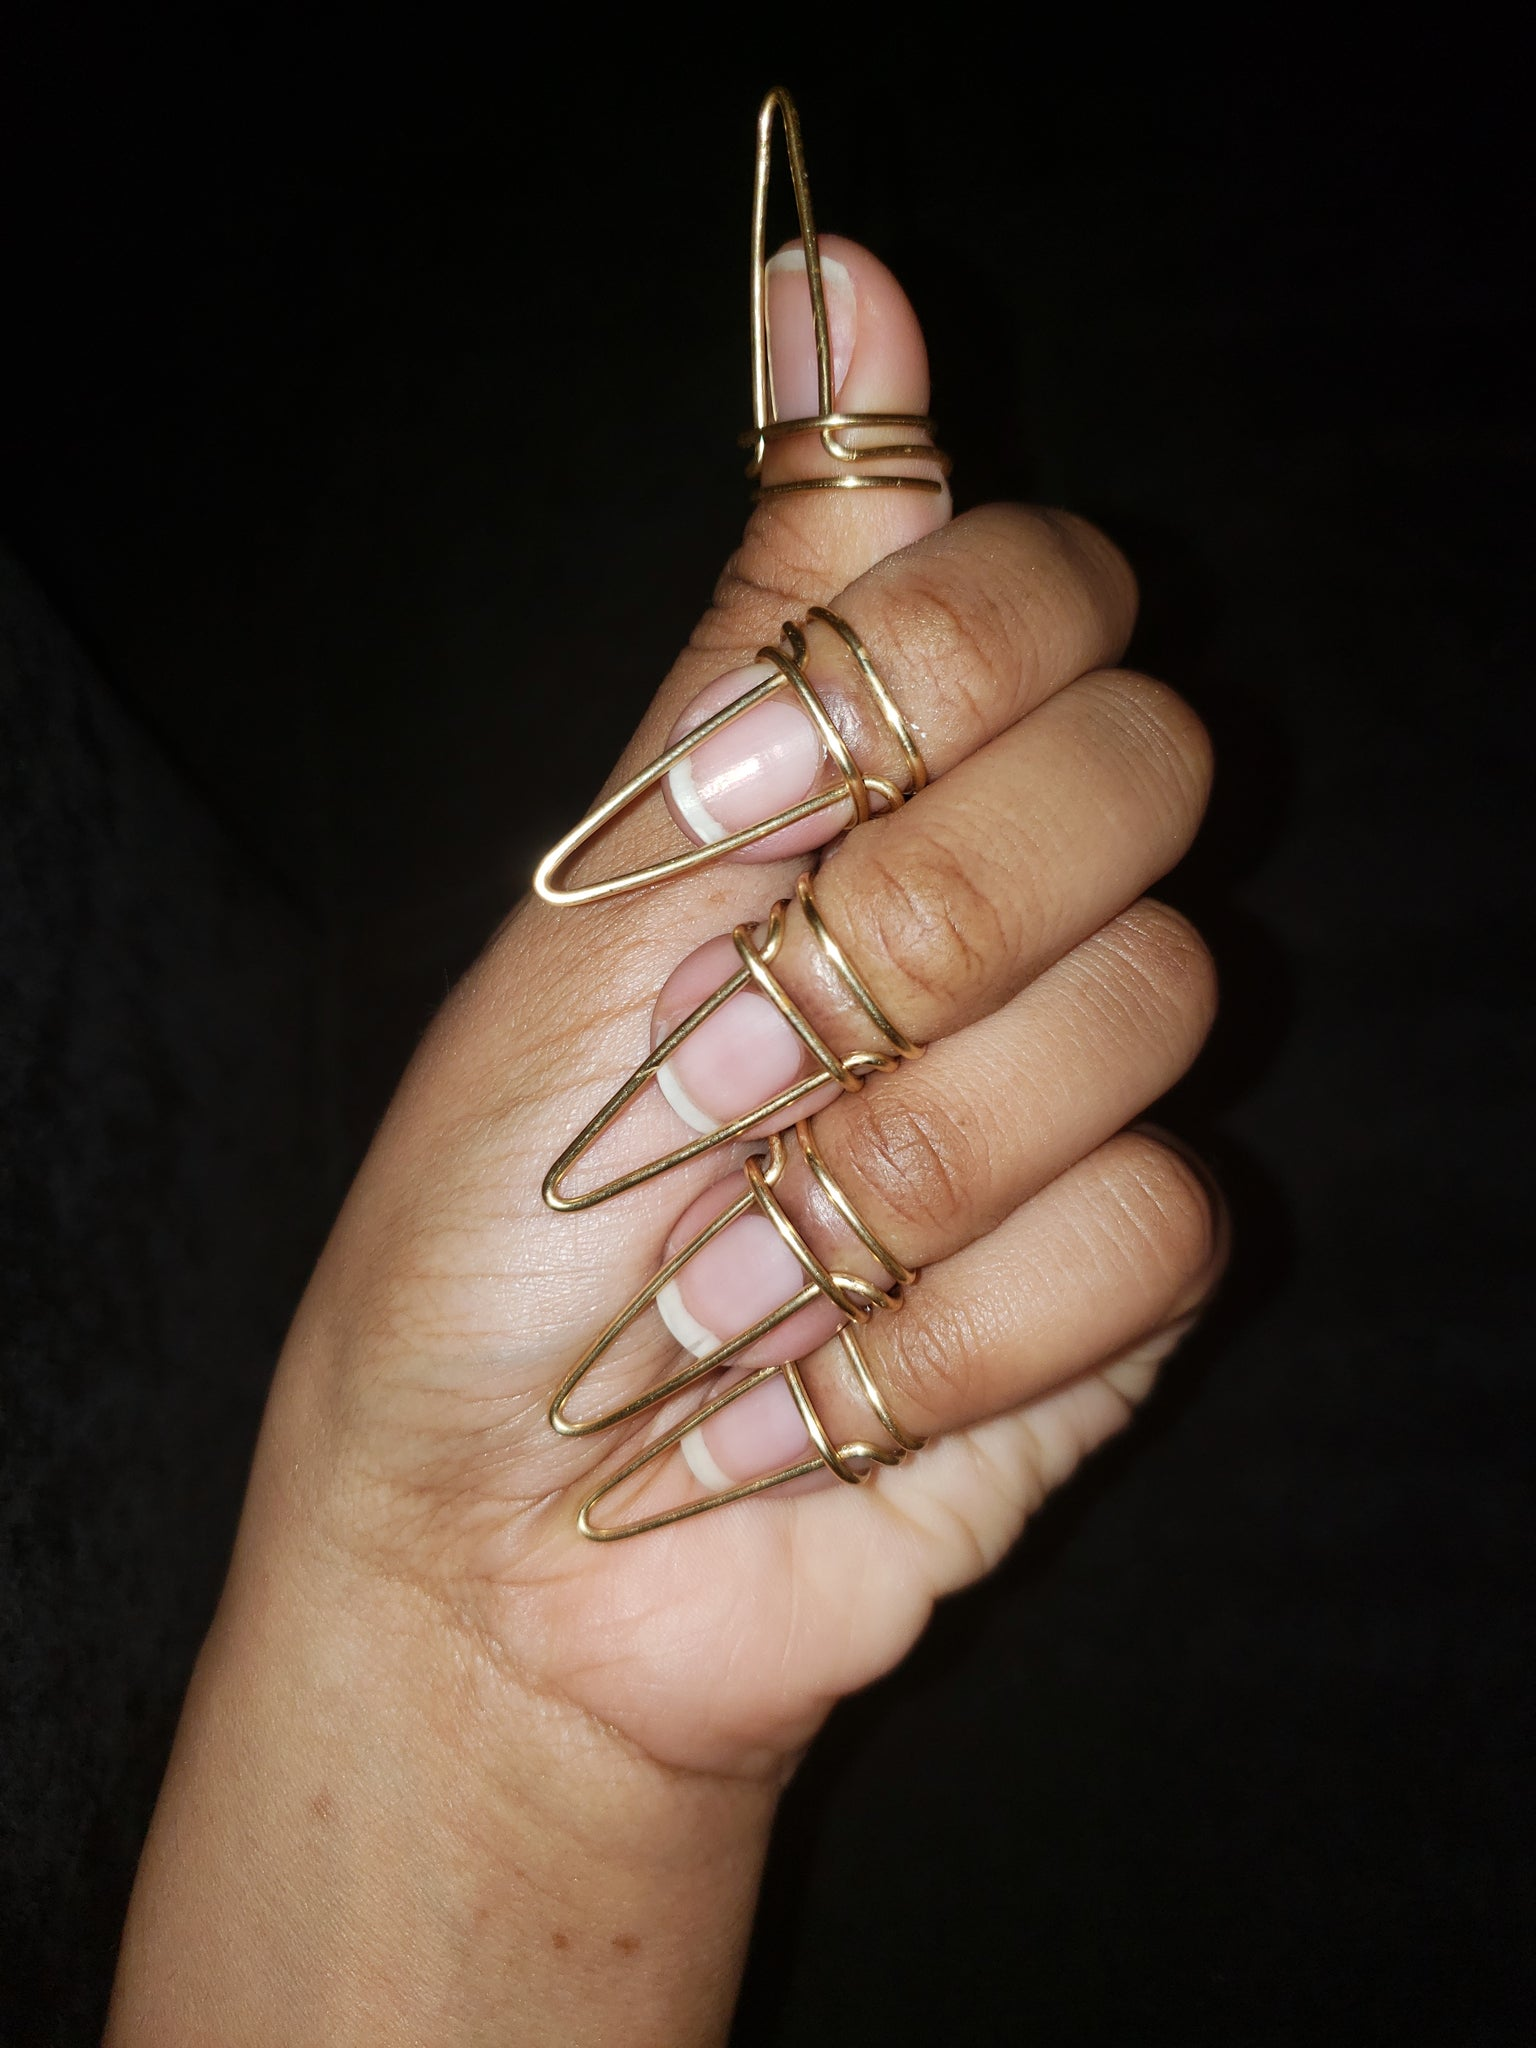 Nail ring set in Halo Style, Gold, 16 Gauge , Long, Stiletto